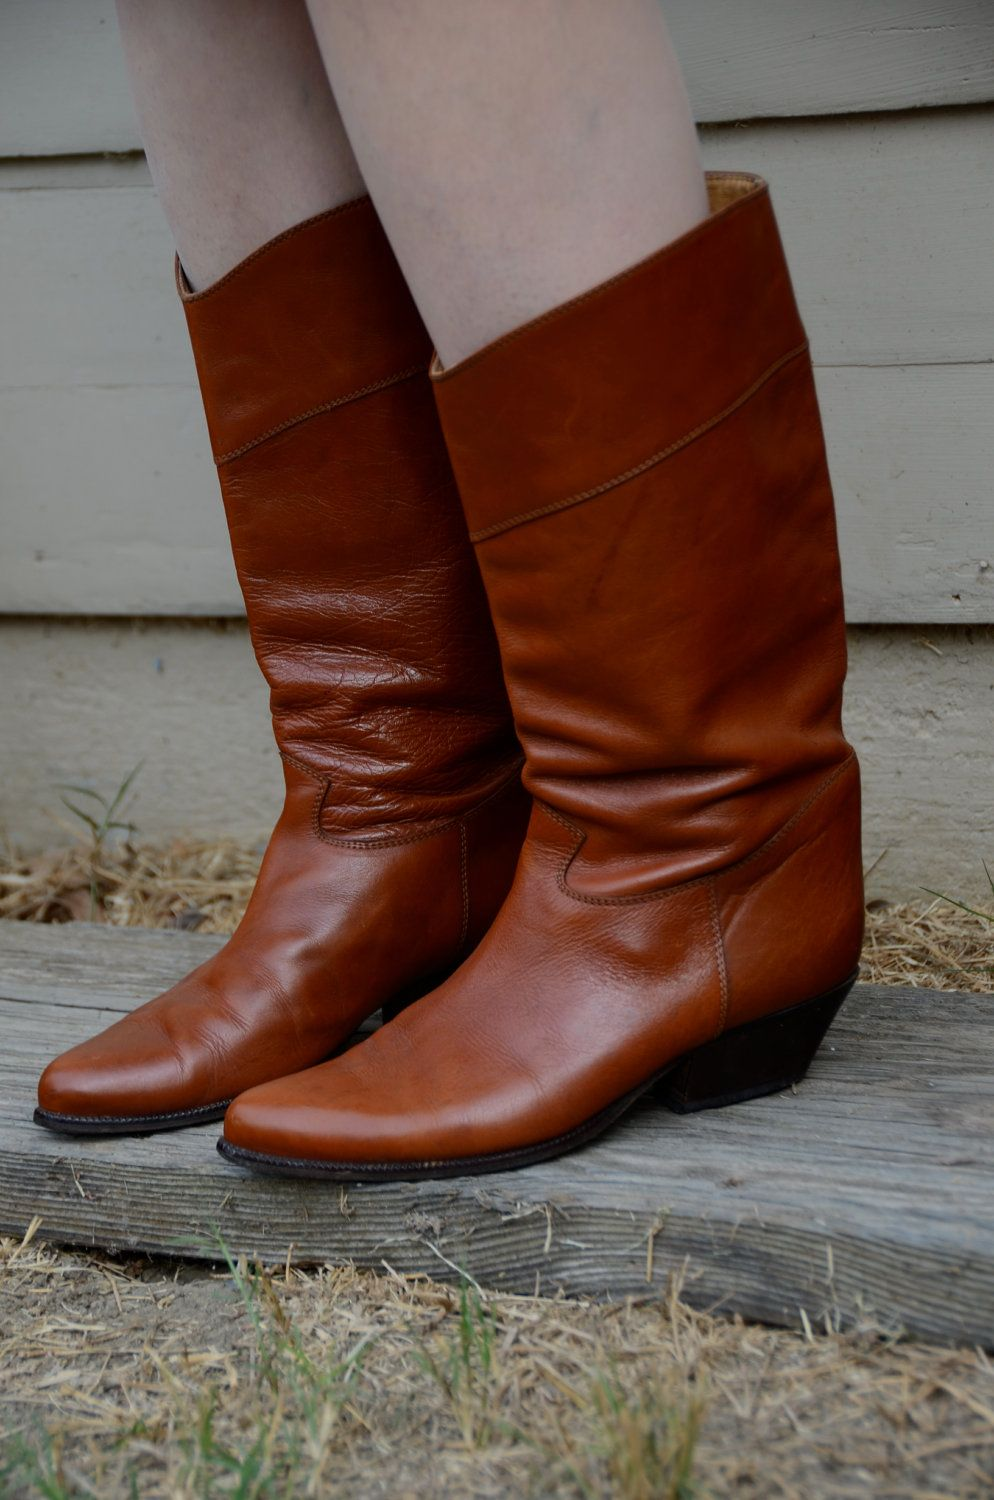 Women s 8 8.5 Sudini Vintage Leather Boots 80 s 4523c59b6c